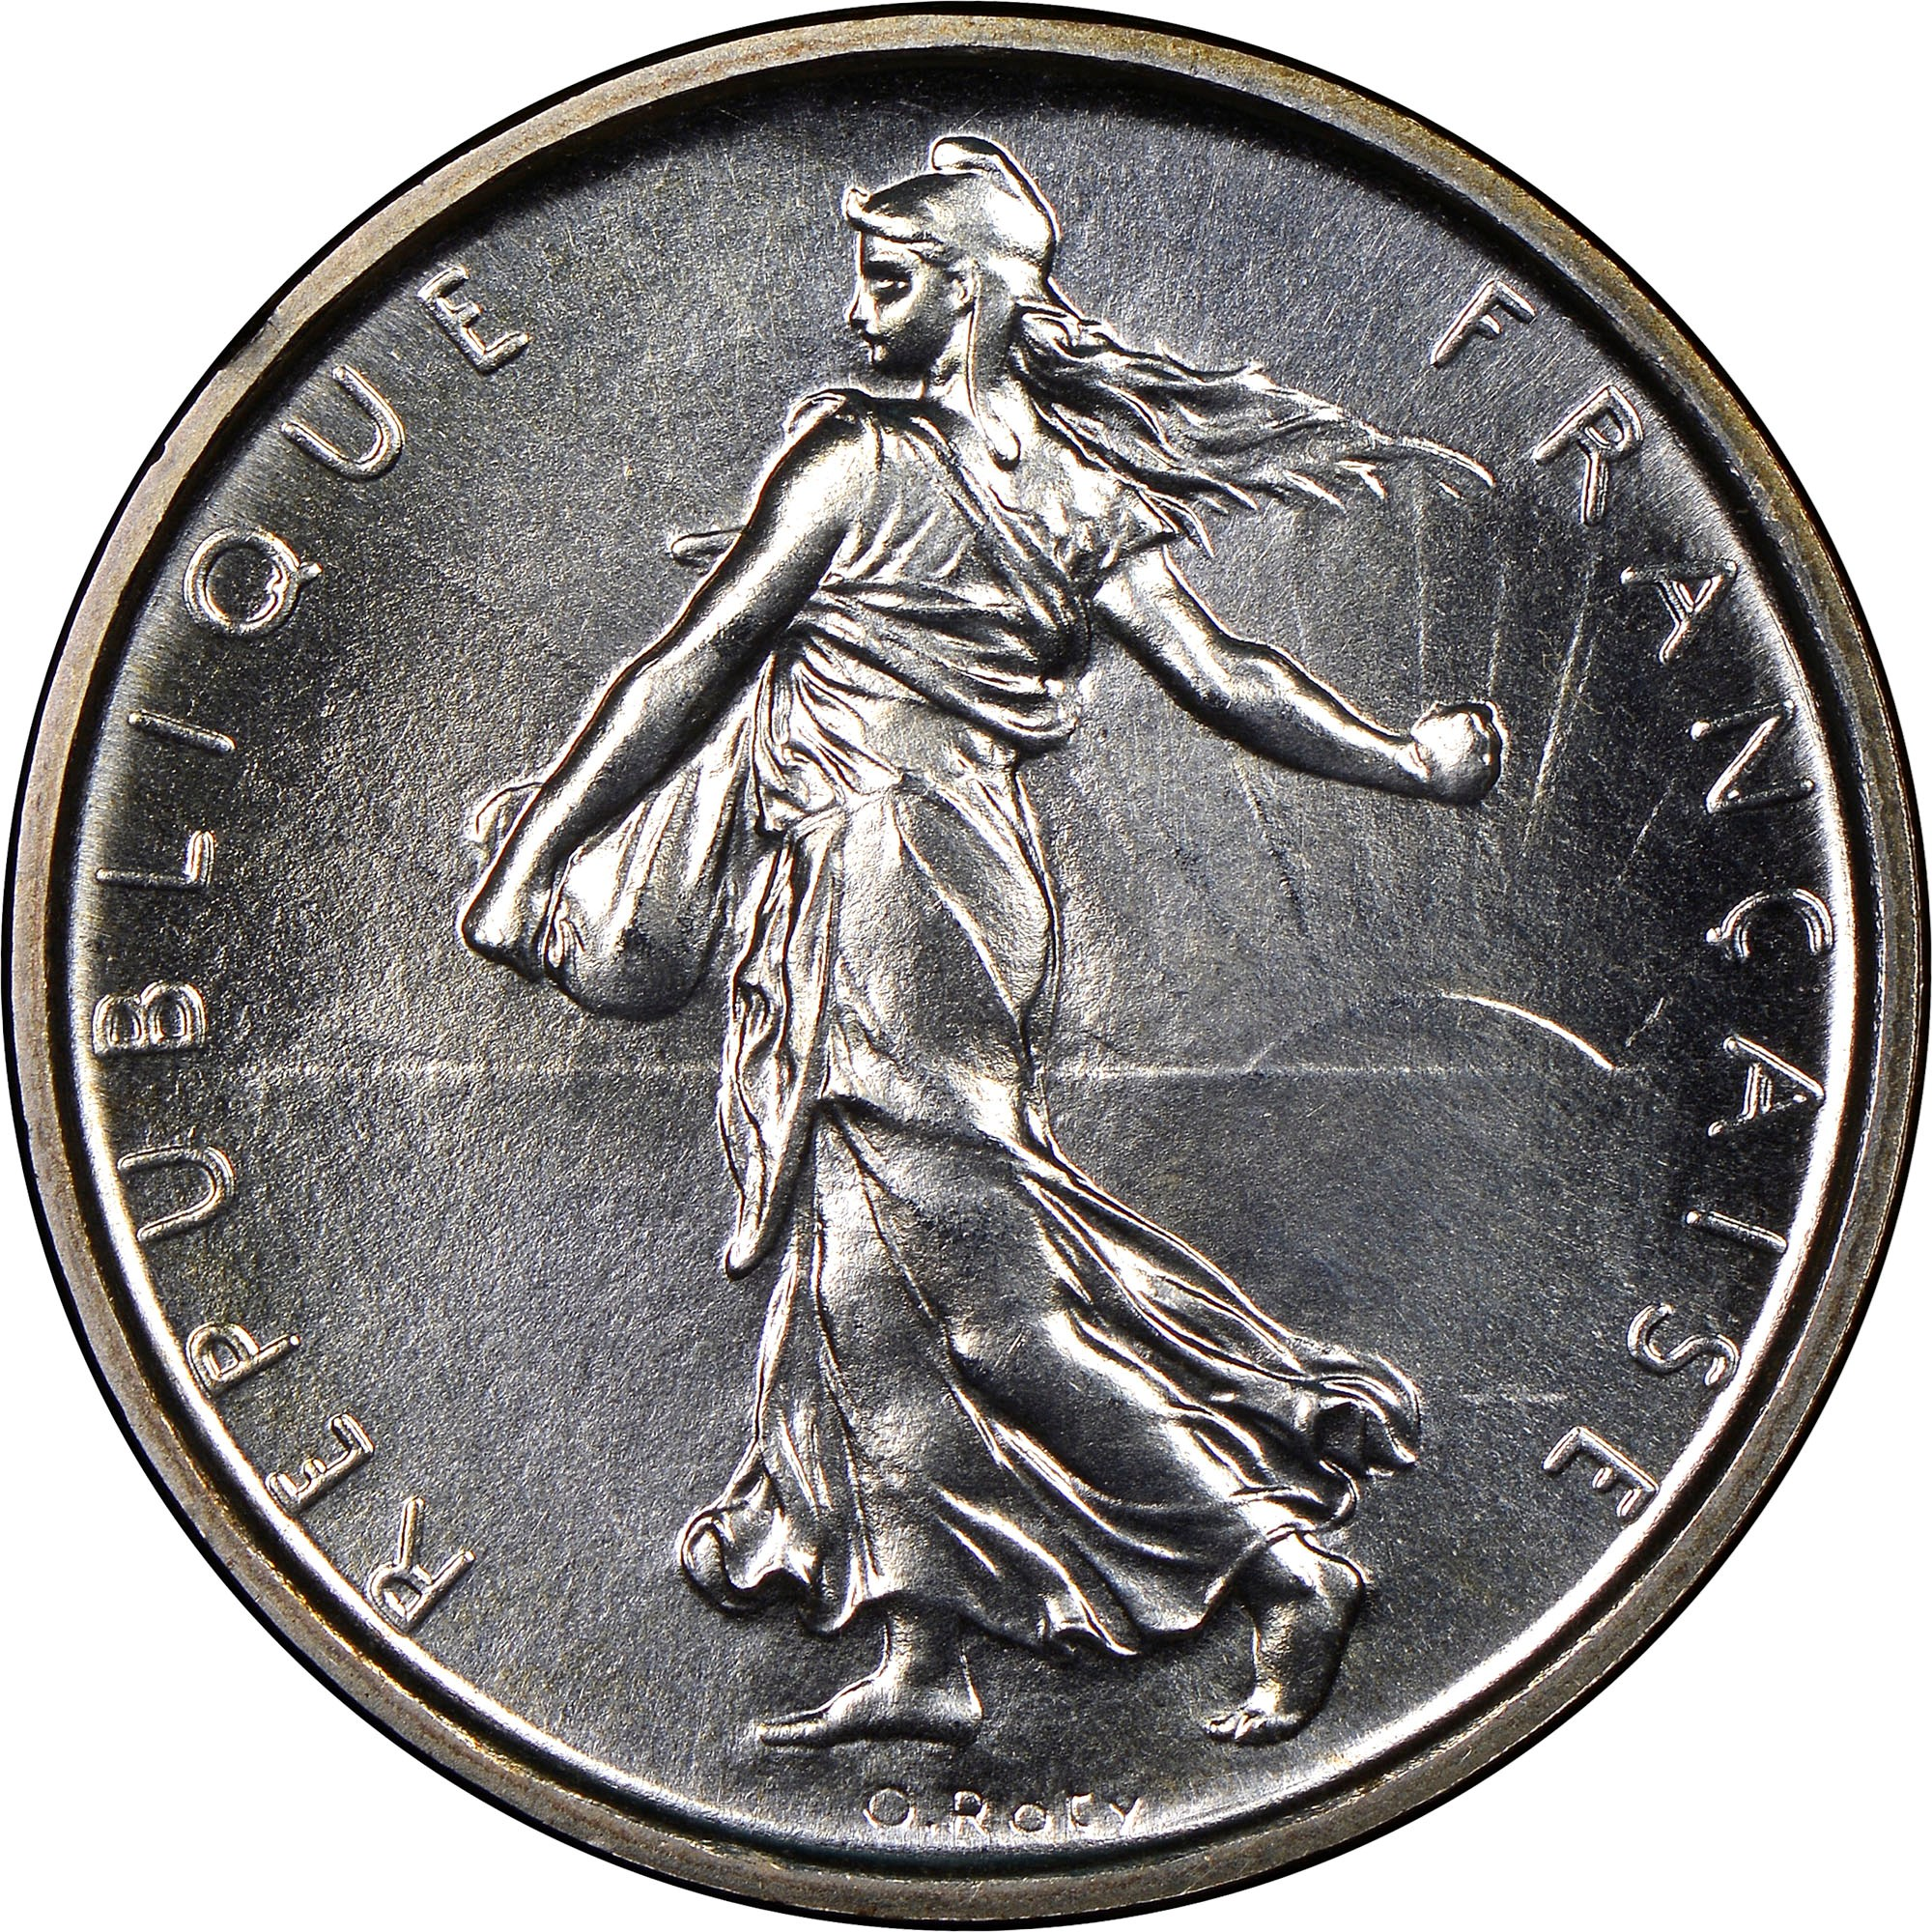 World silver coin bullion value guide by lorraine and sanford.